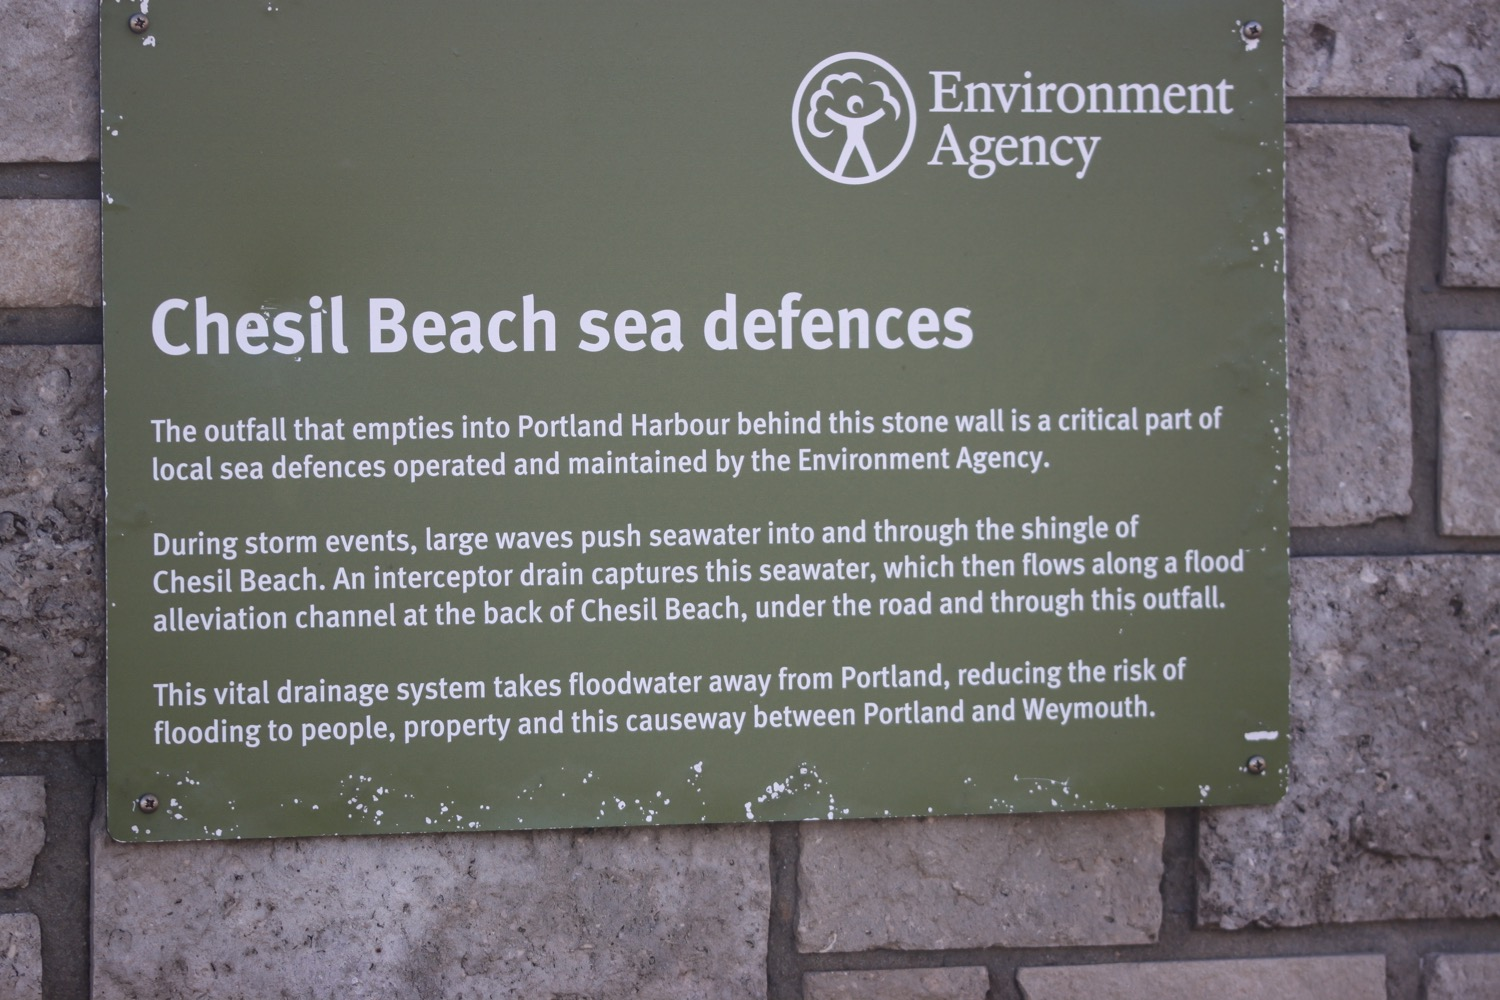 chesil beach sea defences